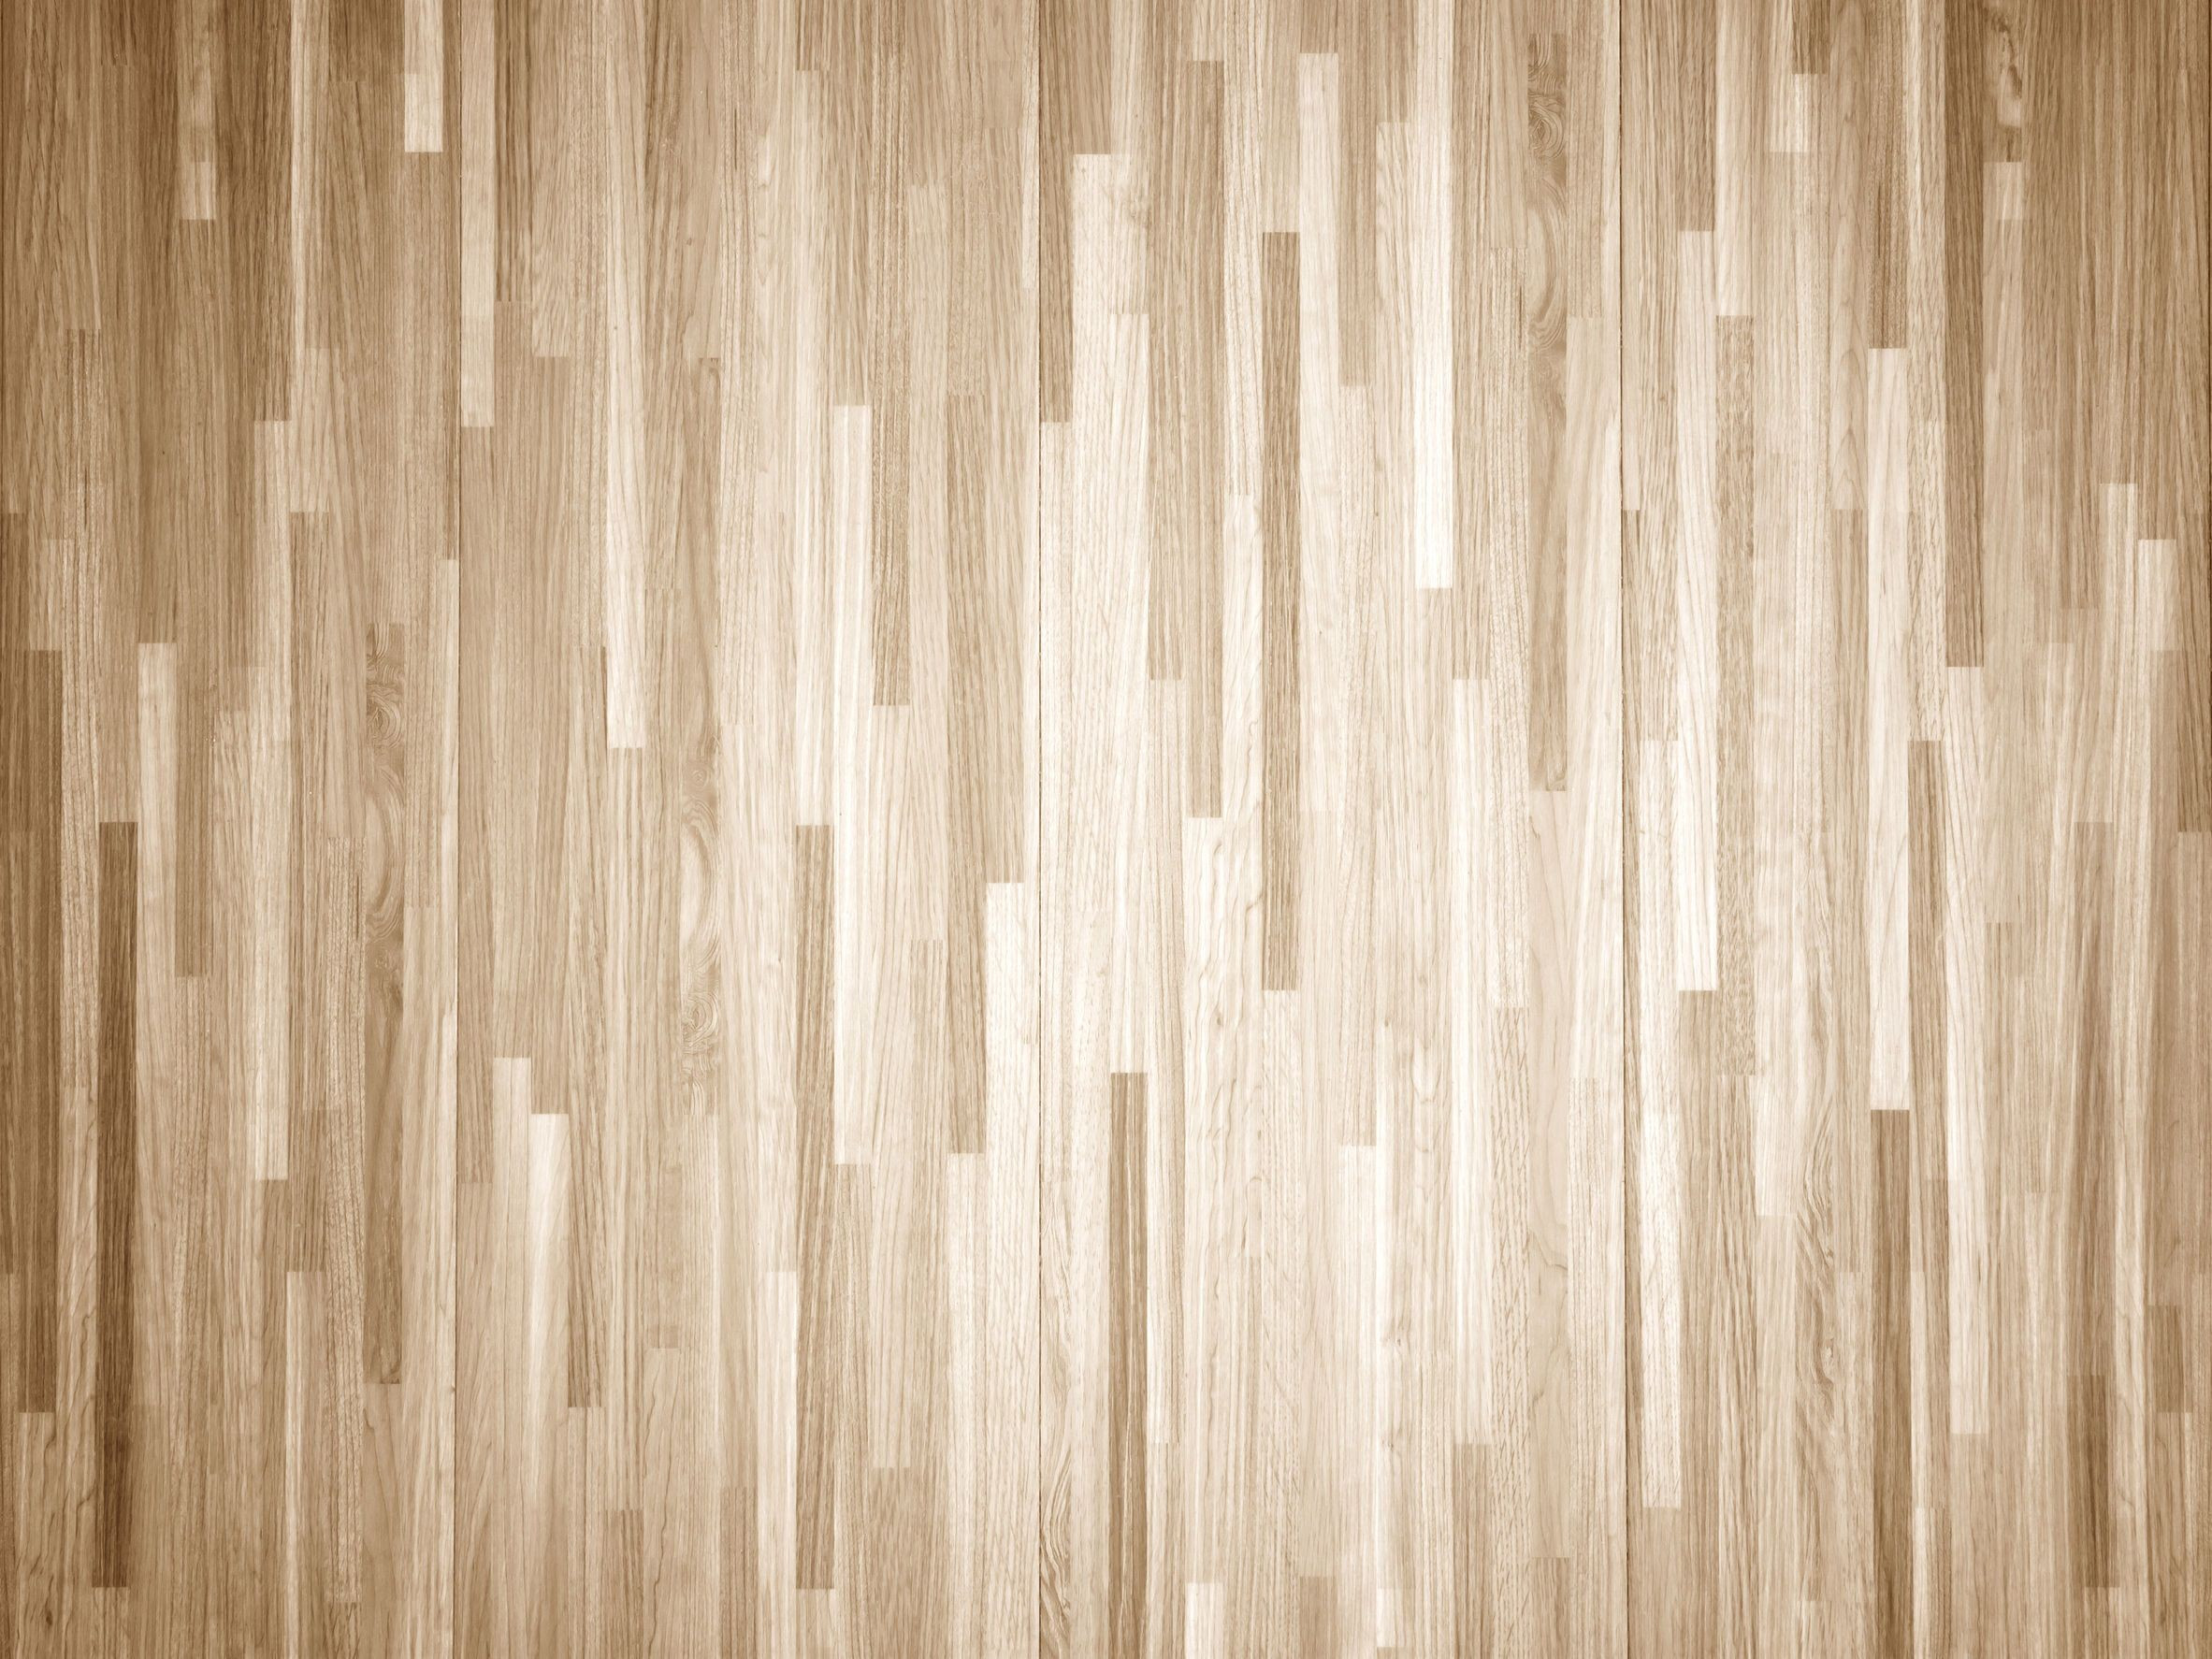 average cost to refinish hardwood floors yourself of 19 unique how much does it cost to refinish hardwood floors gallery regarding how much does it cost to refinish hardwood floors best of how to chemically strip wood